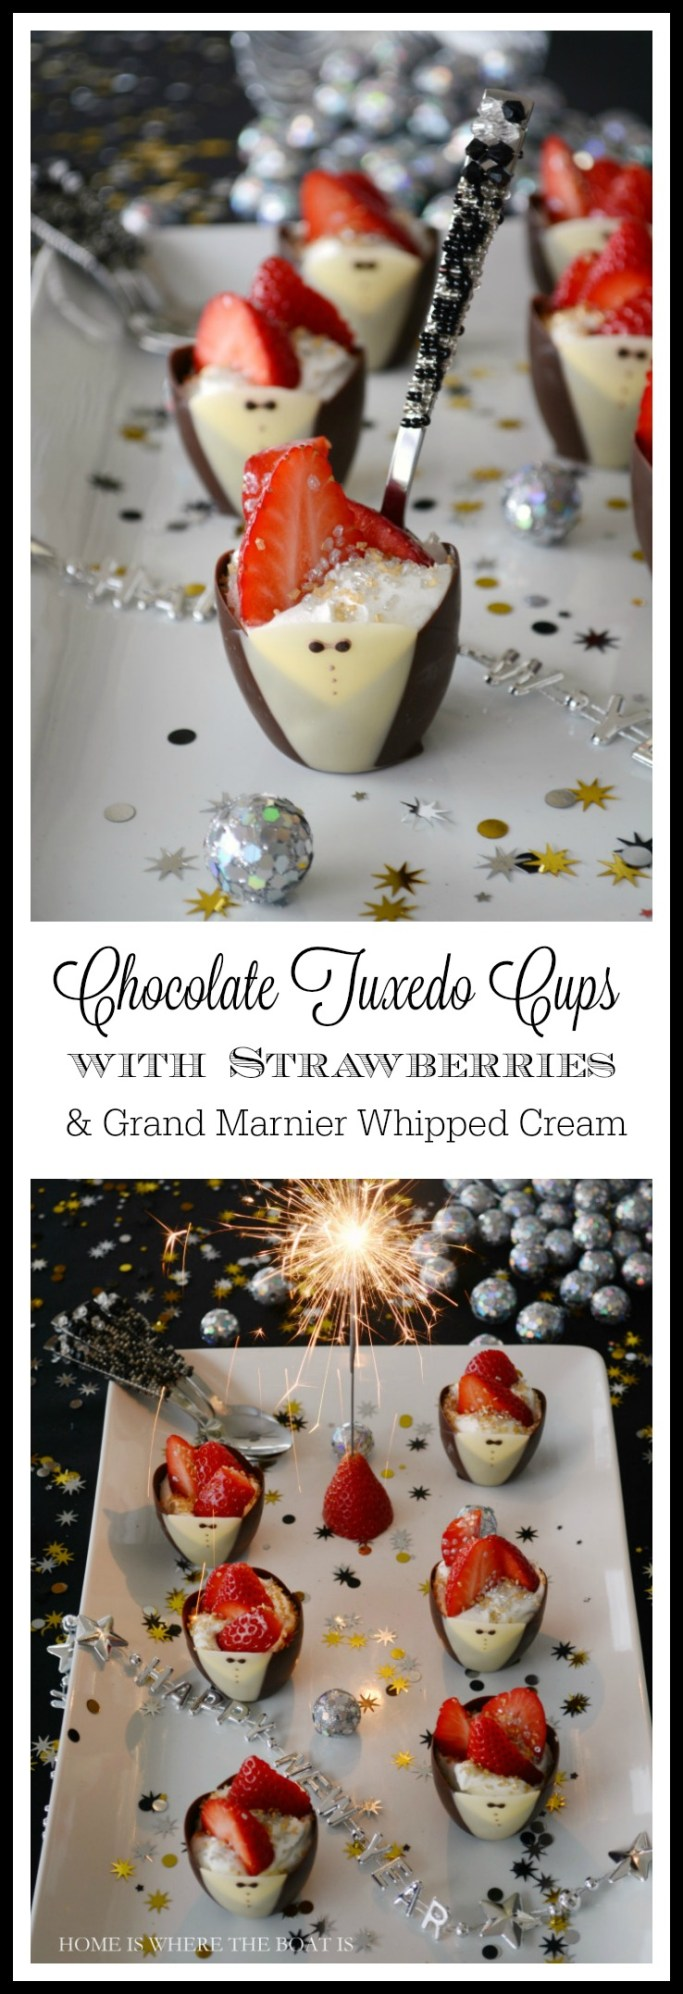 Chocolate Tuxedo Cups with Strawberries and Grand Marnier Whipped Cream